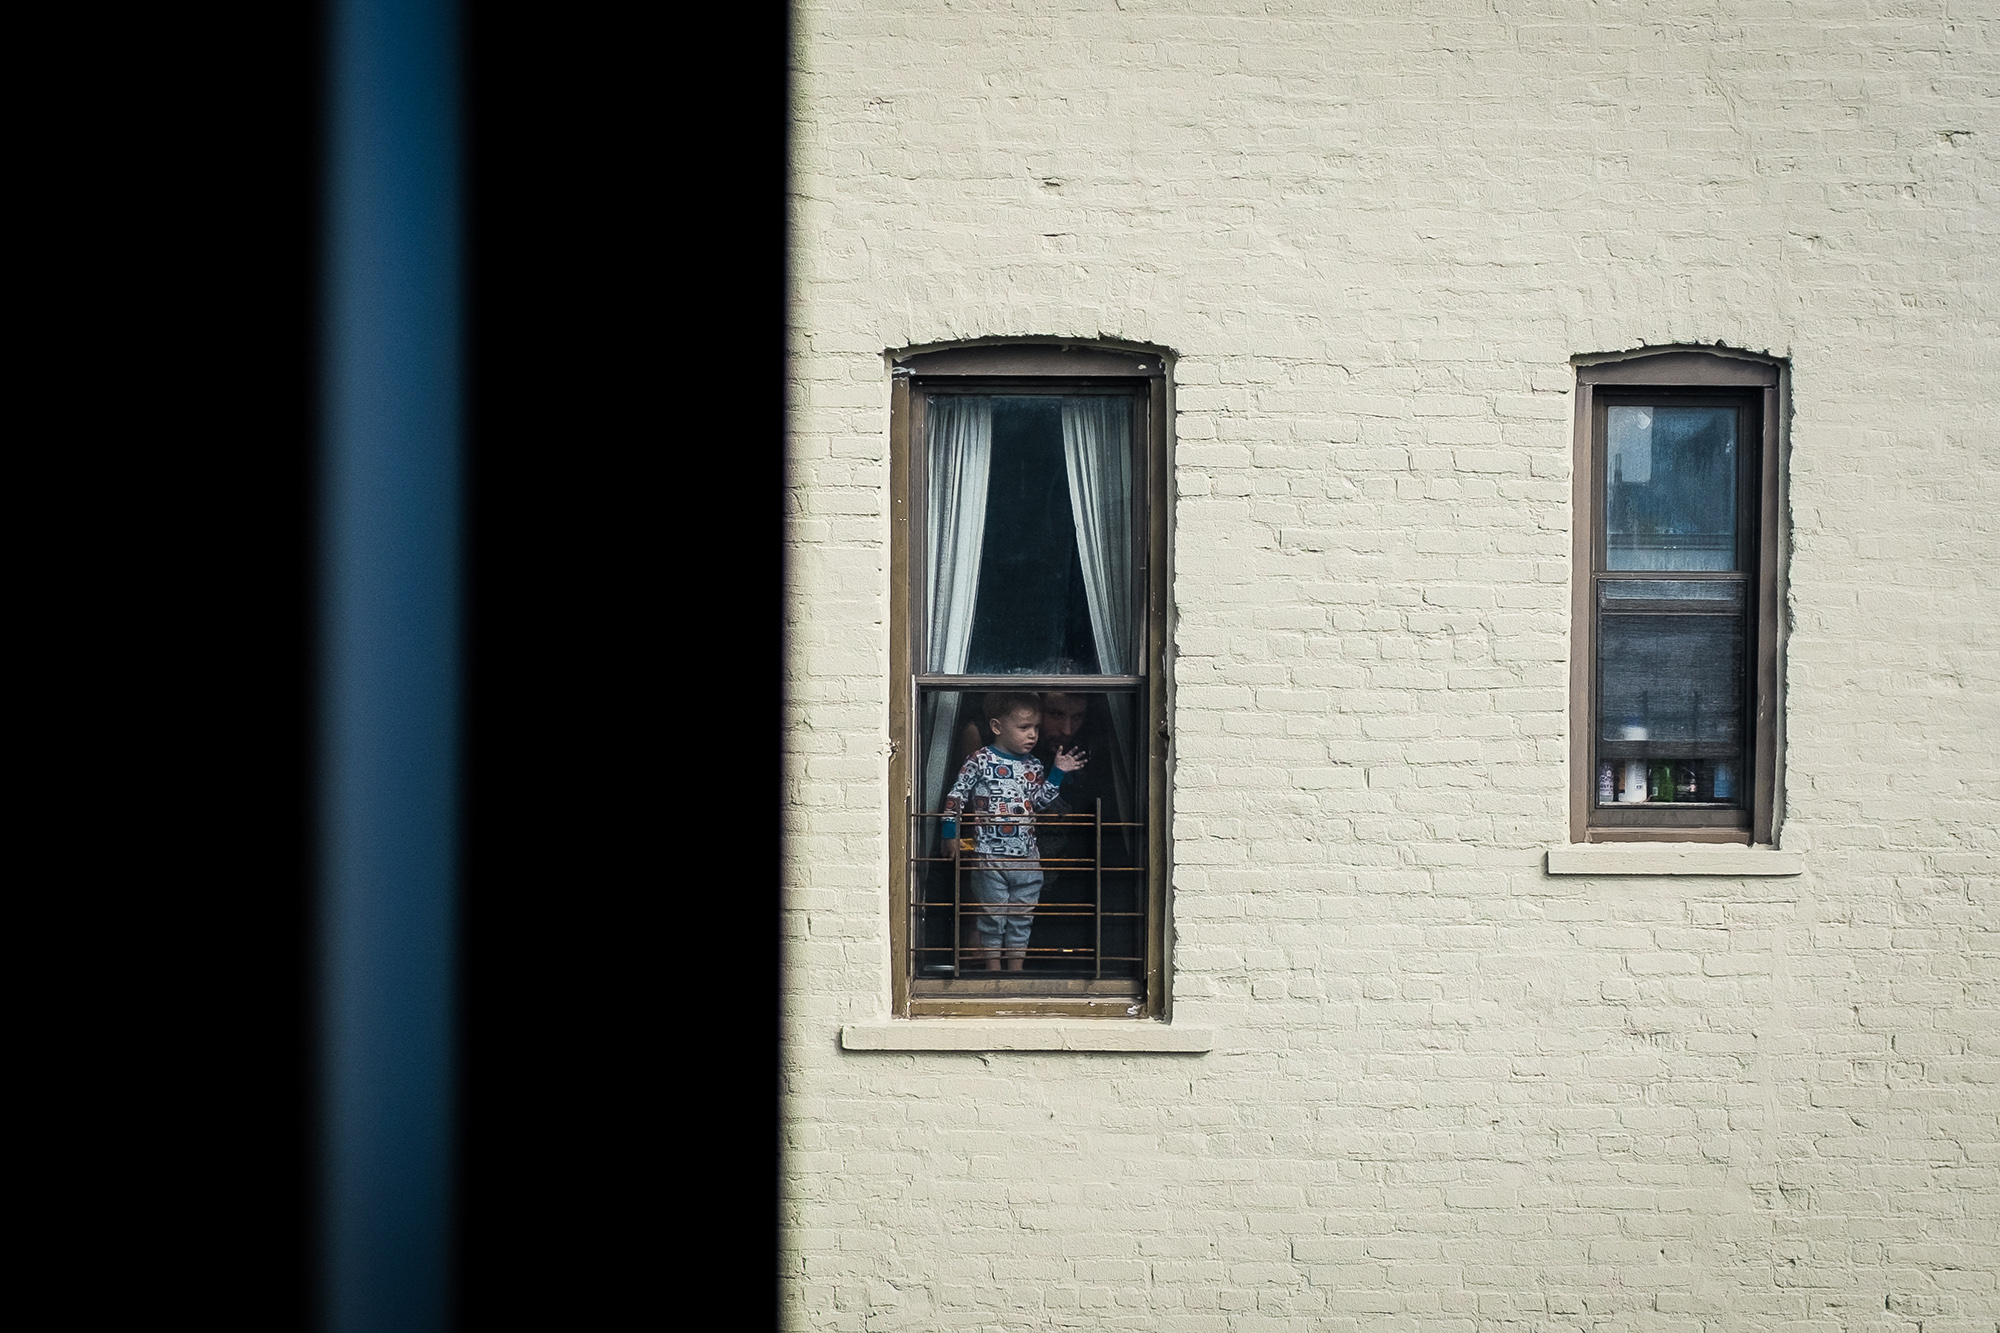 A little boy and his father can be seen looking out of a window in Brooklyn, New York, USA, 16 March 2020. New York City Public schools will close due to coronavirus until at least 20 April. EPA-EFE/Alba Vigaray